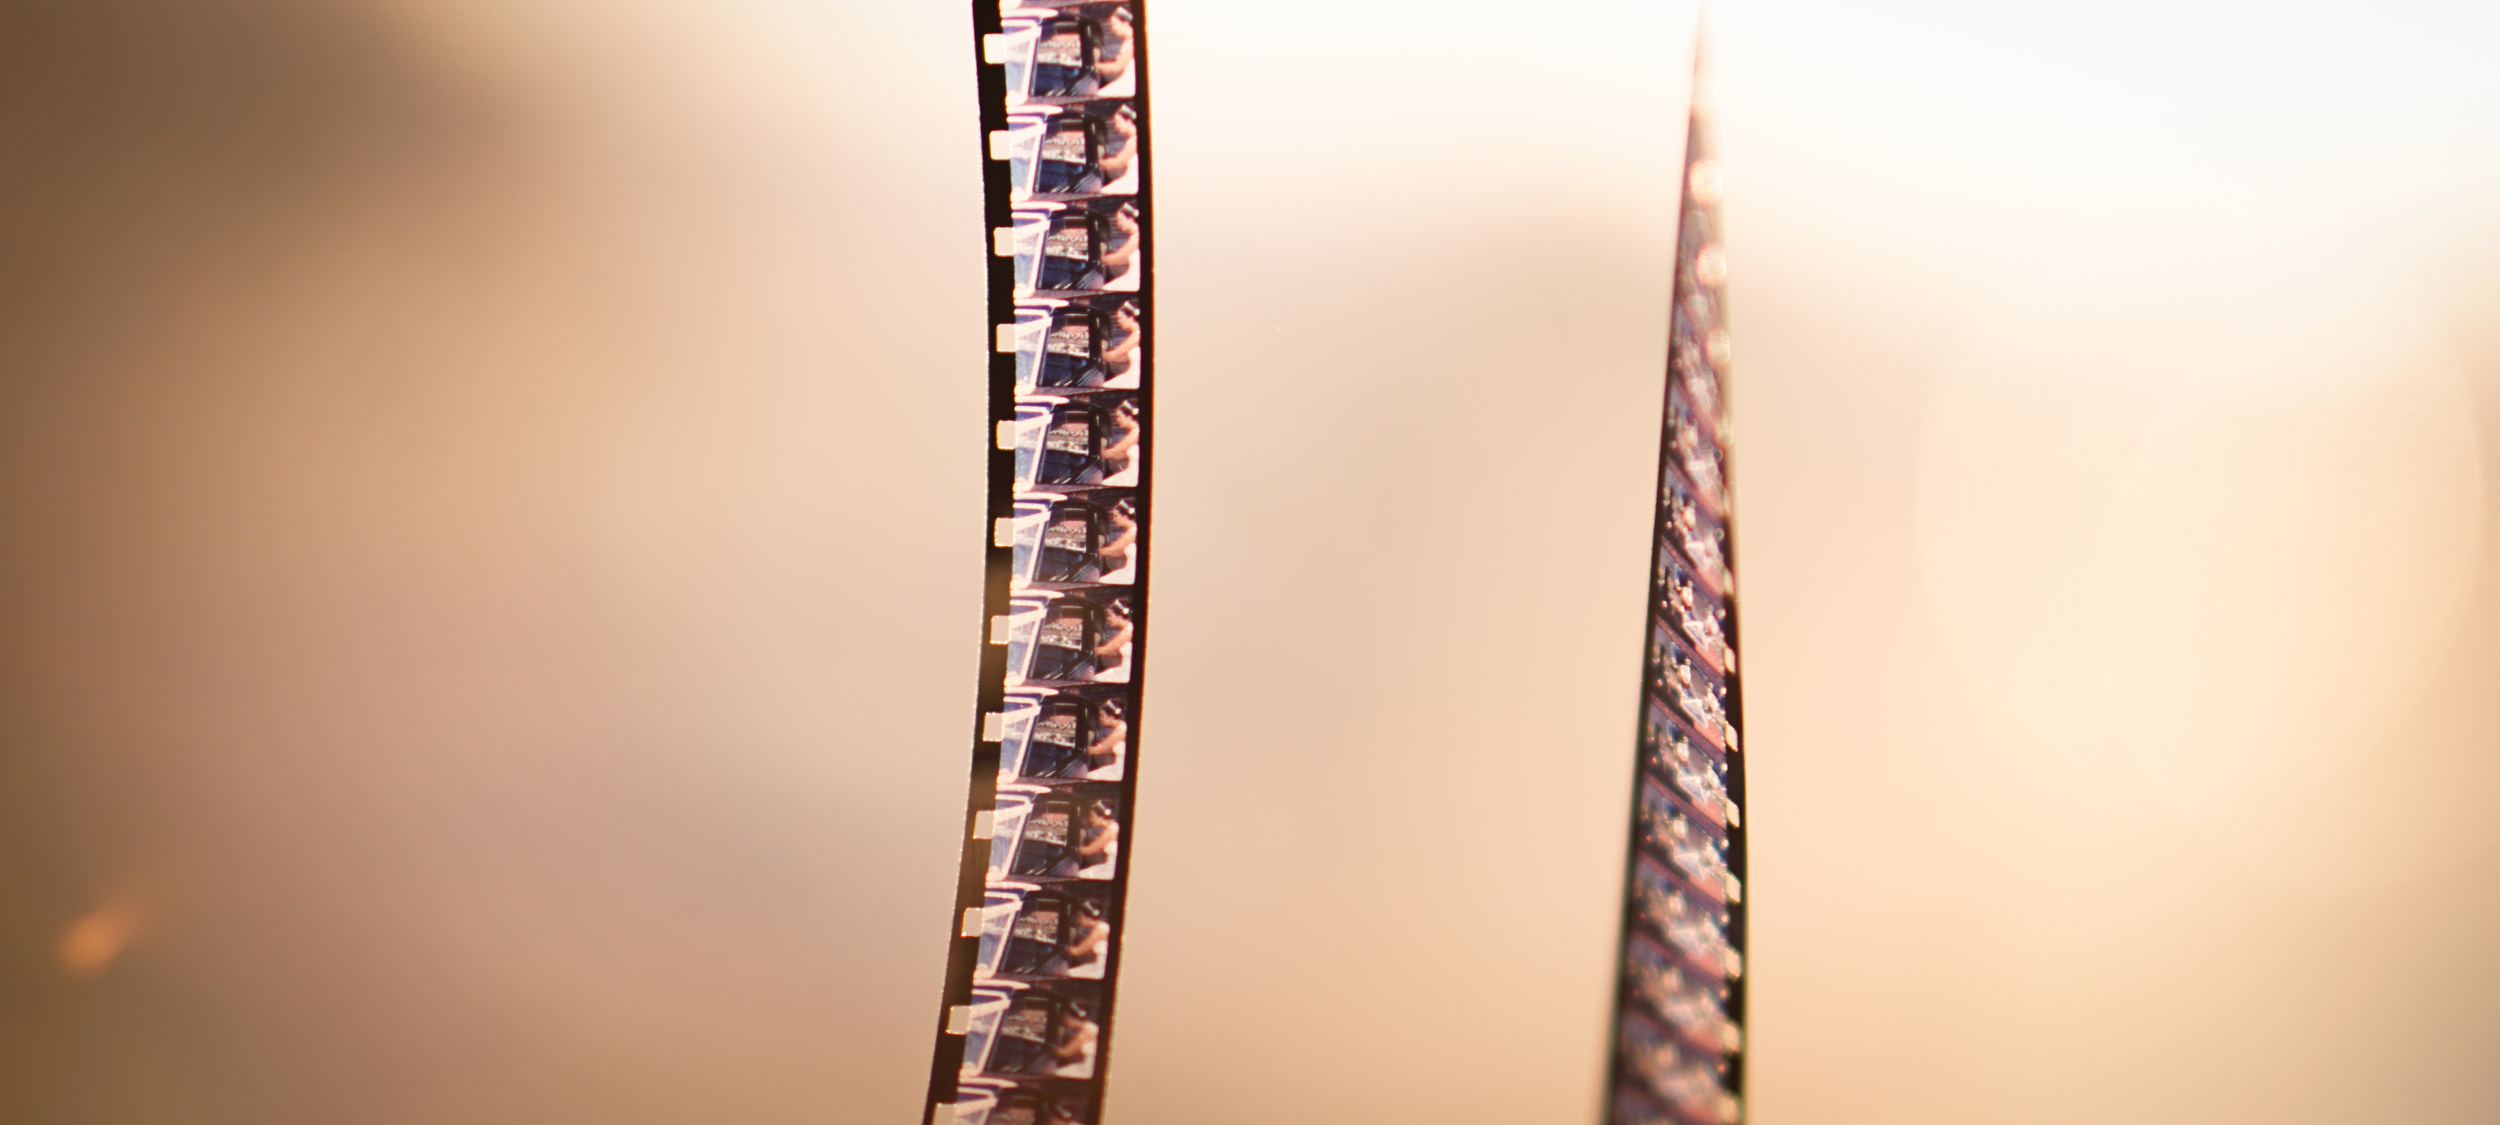 You can look at the individual frames on Super 8 cine film.